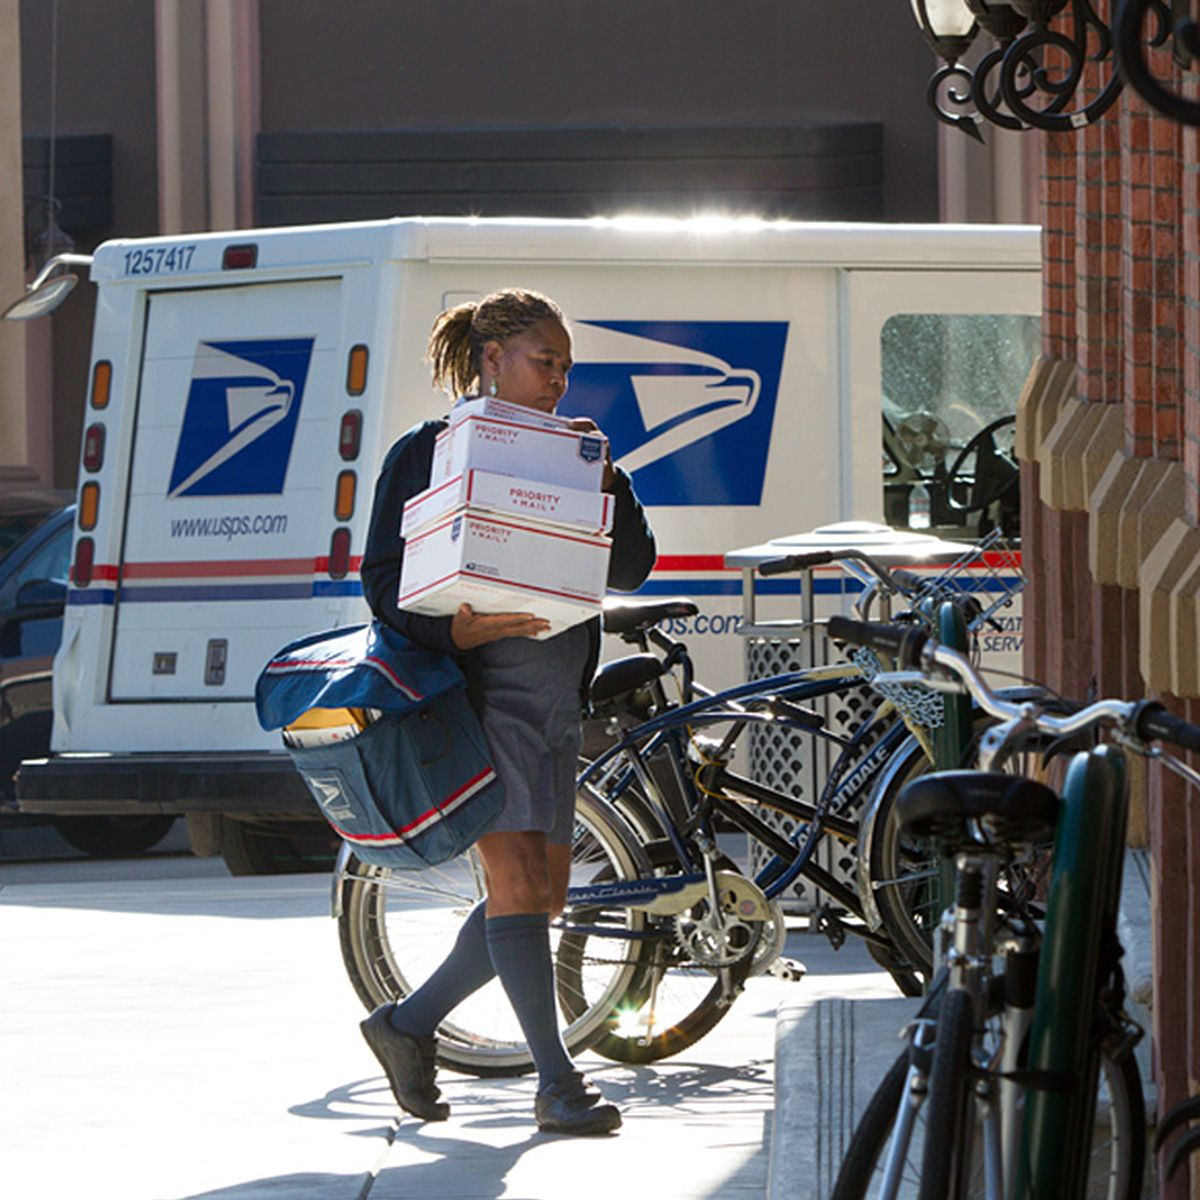 Over 630 000 Employees Work Hard To Help Deliver 400 Million Mail